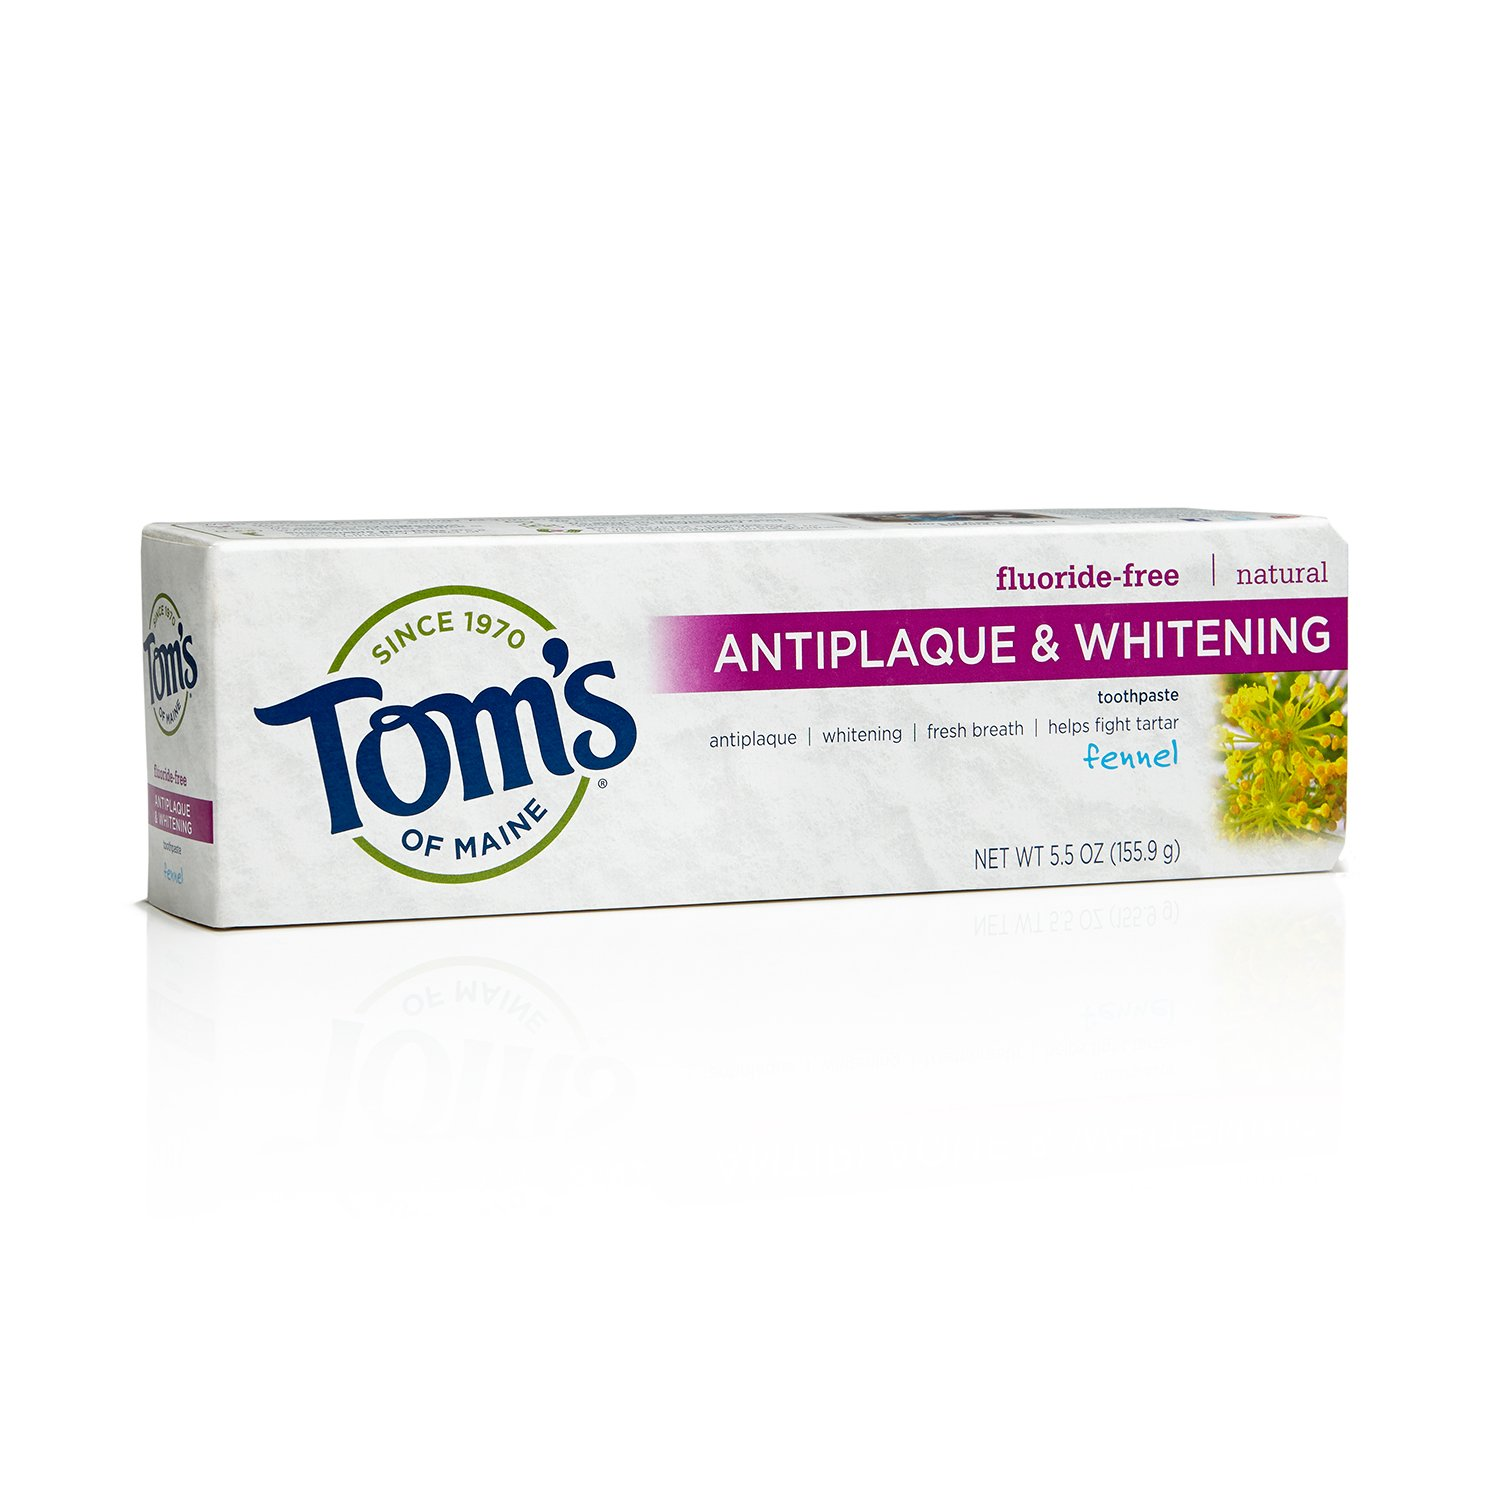 Tom's of Maine Natural Fluoride-Free Antiplaque & Whitening Toothpaste, Fennel 5.50 oz (Pack of 24)